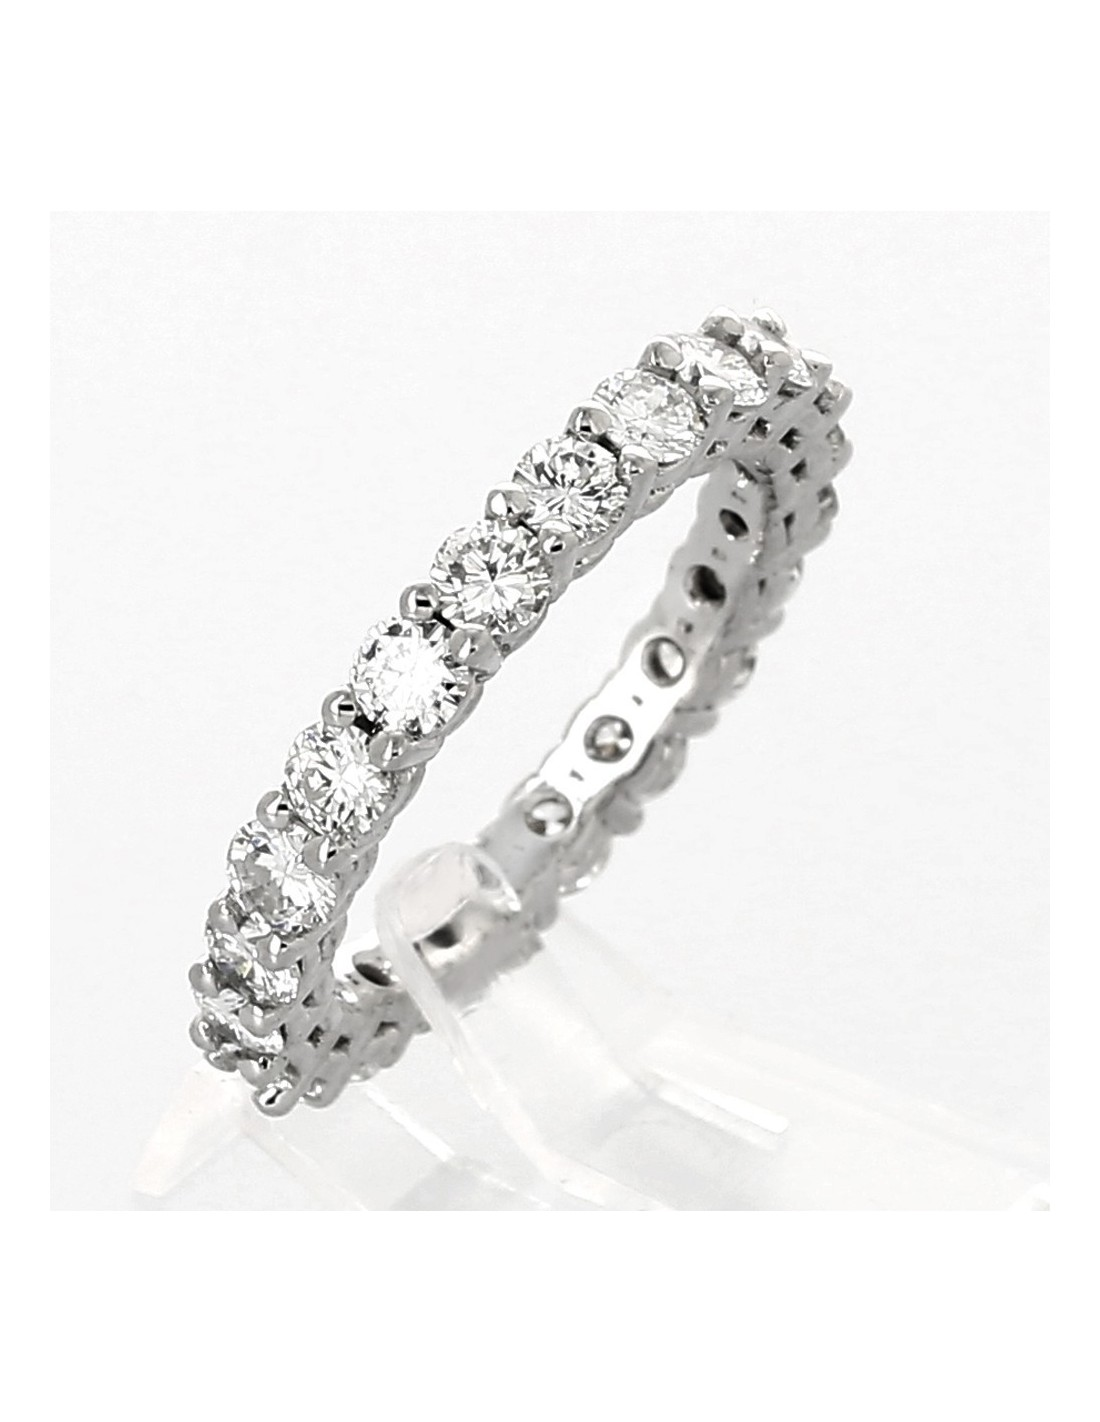 Fabuleux Alliance de mariage femme en or 18 carats et diamants tour complet  WK21